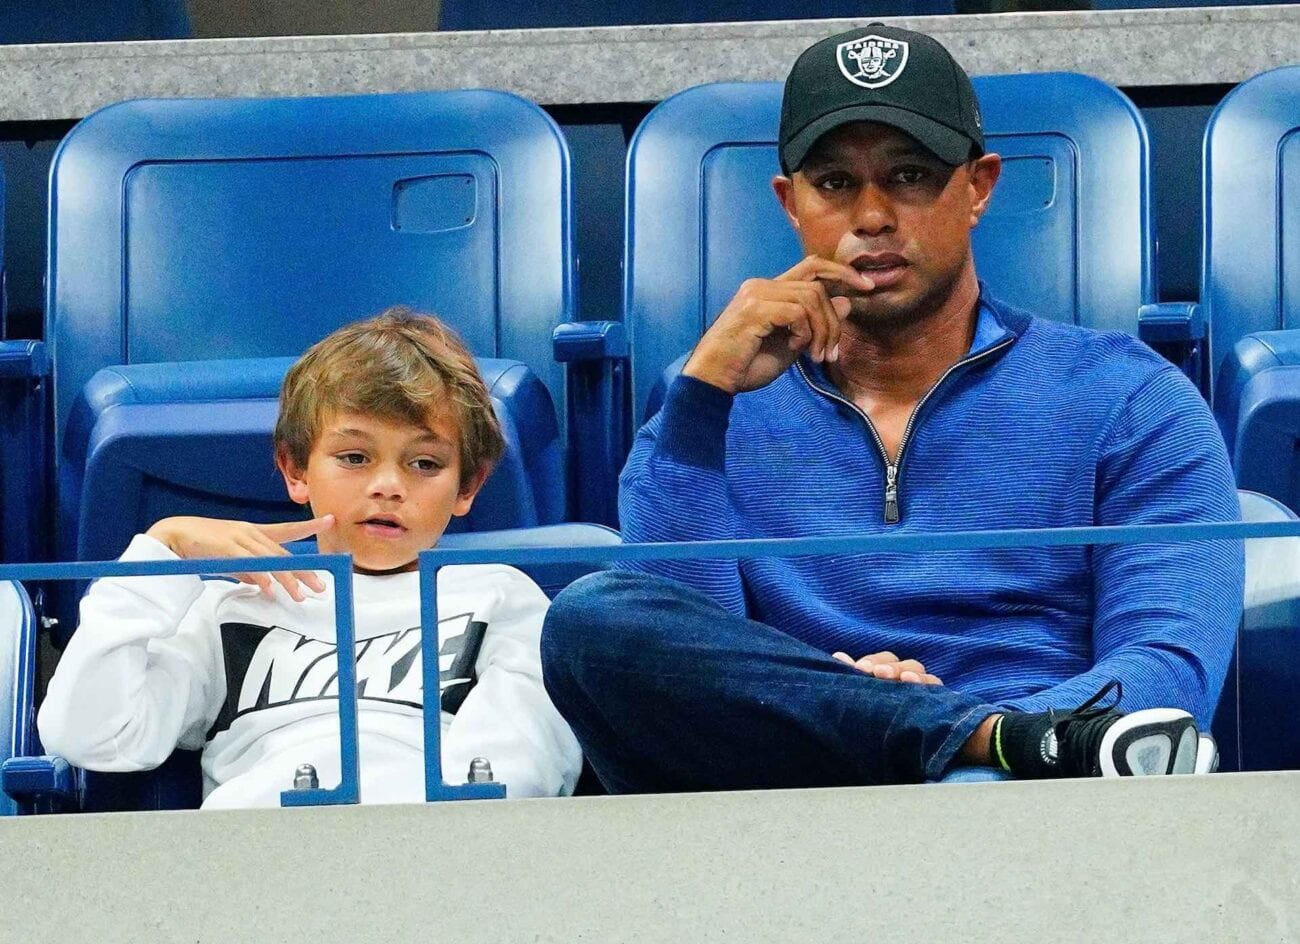 Tiger Woods may soon see his son following in his footsteps. The two are competing in a golf tournament together.